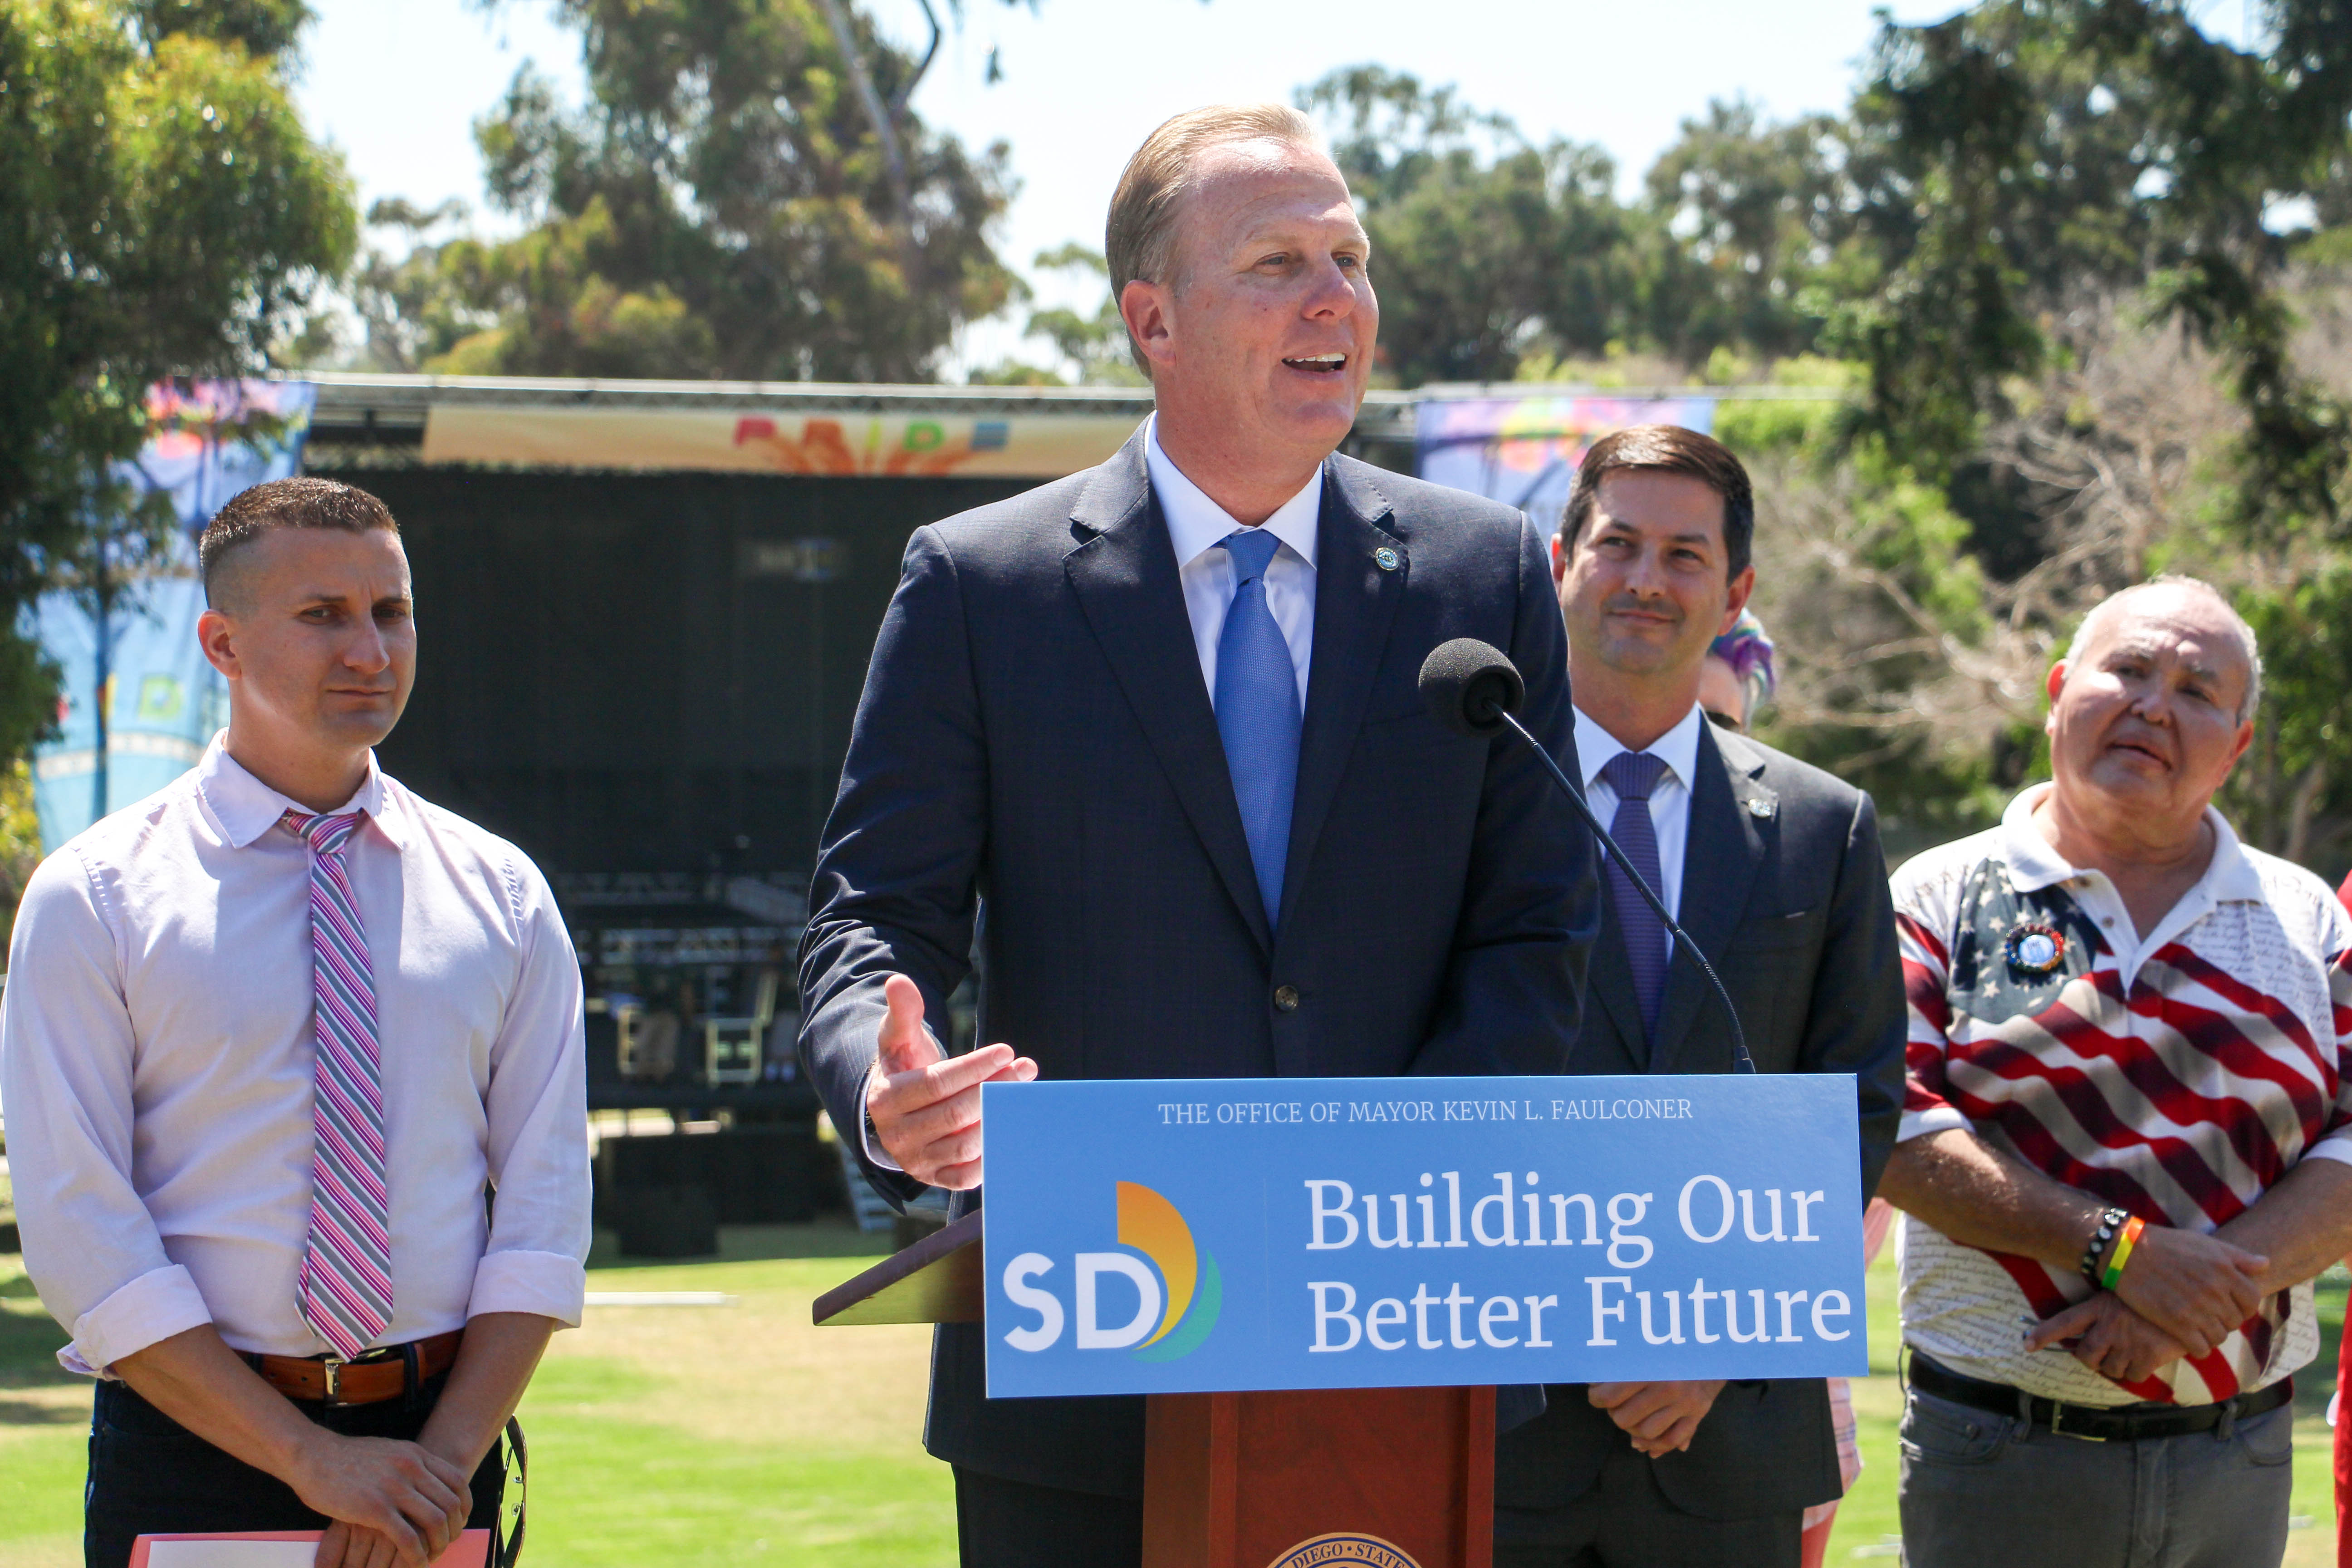 Mayor Faulconer, Comic-Con, Pride Showcase Economic & Cultural Impacts of San Diego's Biggest Tourism Month